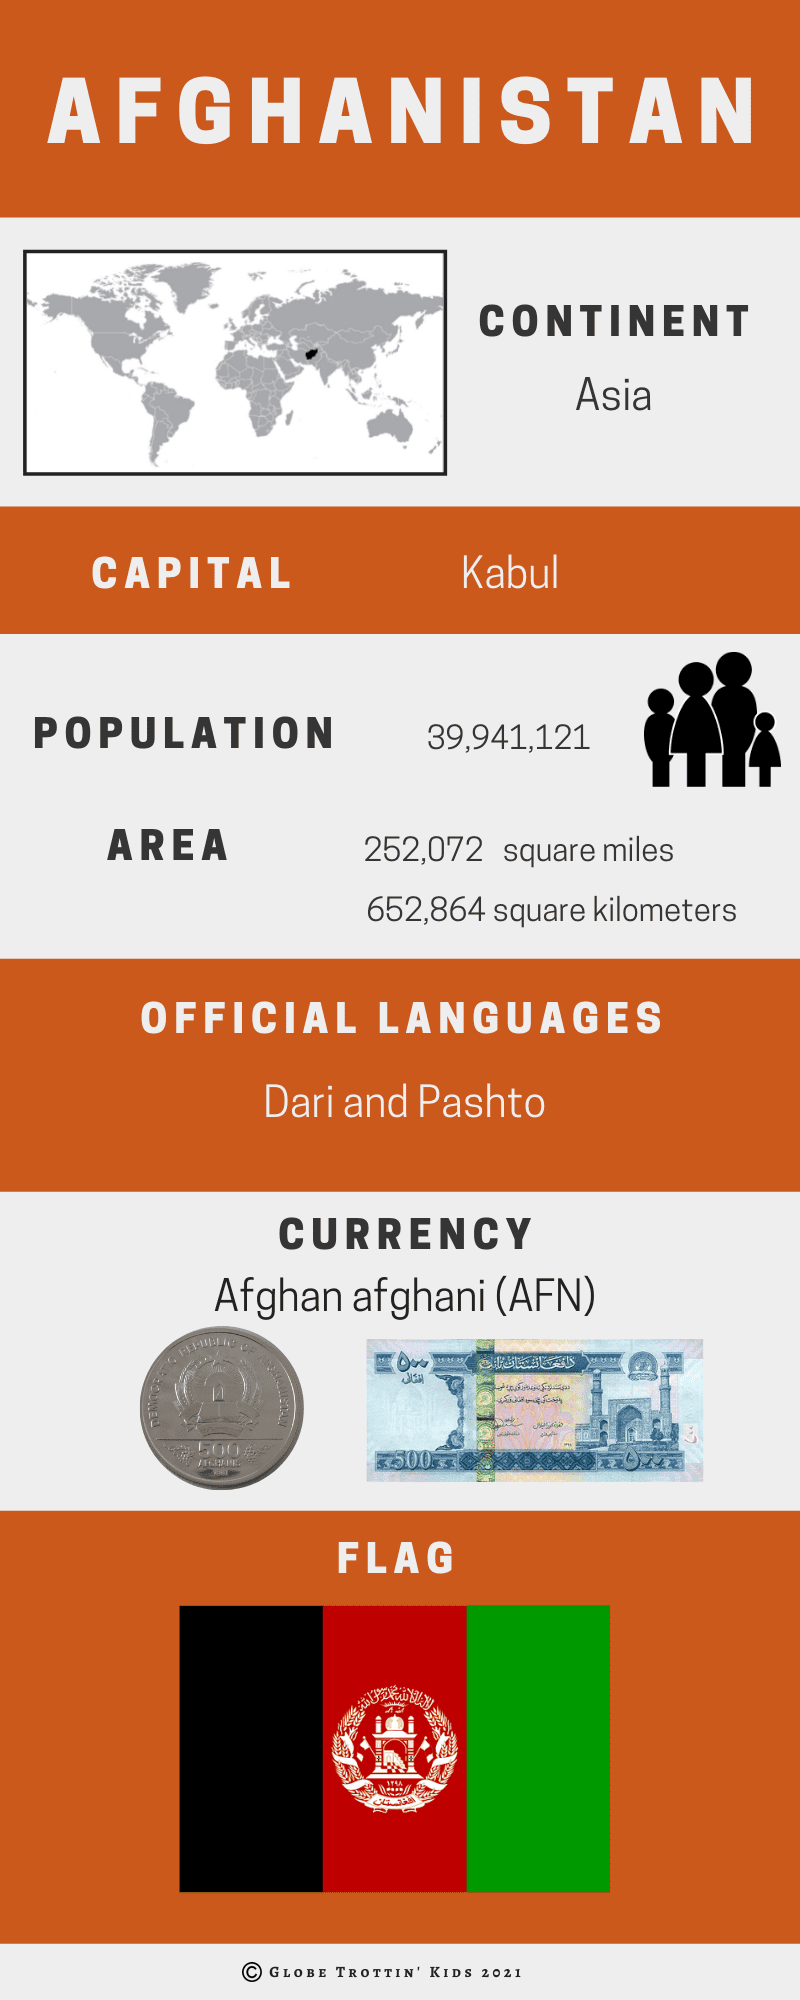 Afghanistan-infographic-afghanistan-country-profile